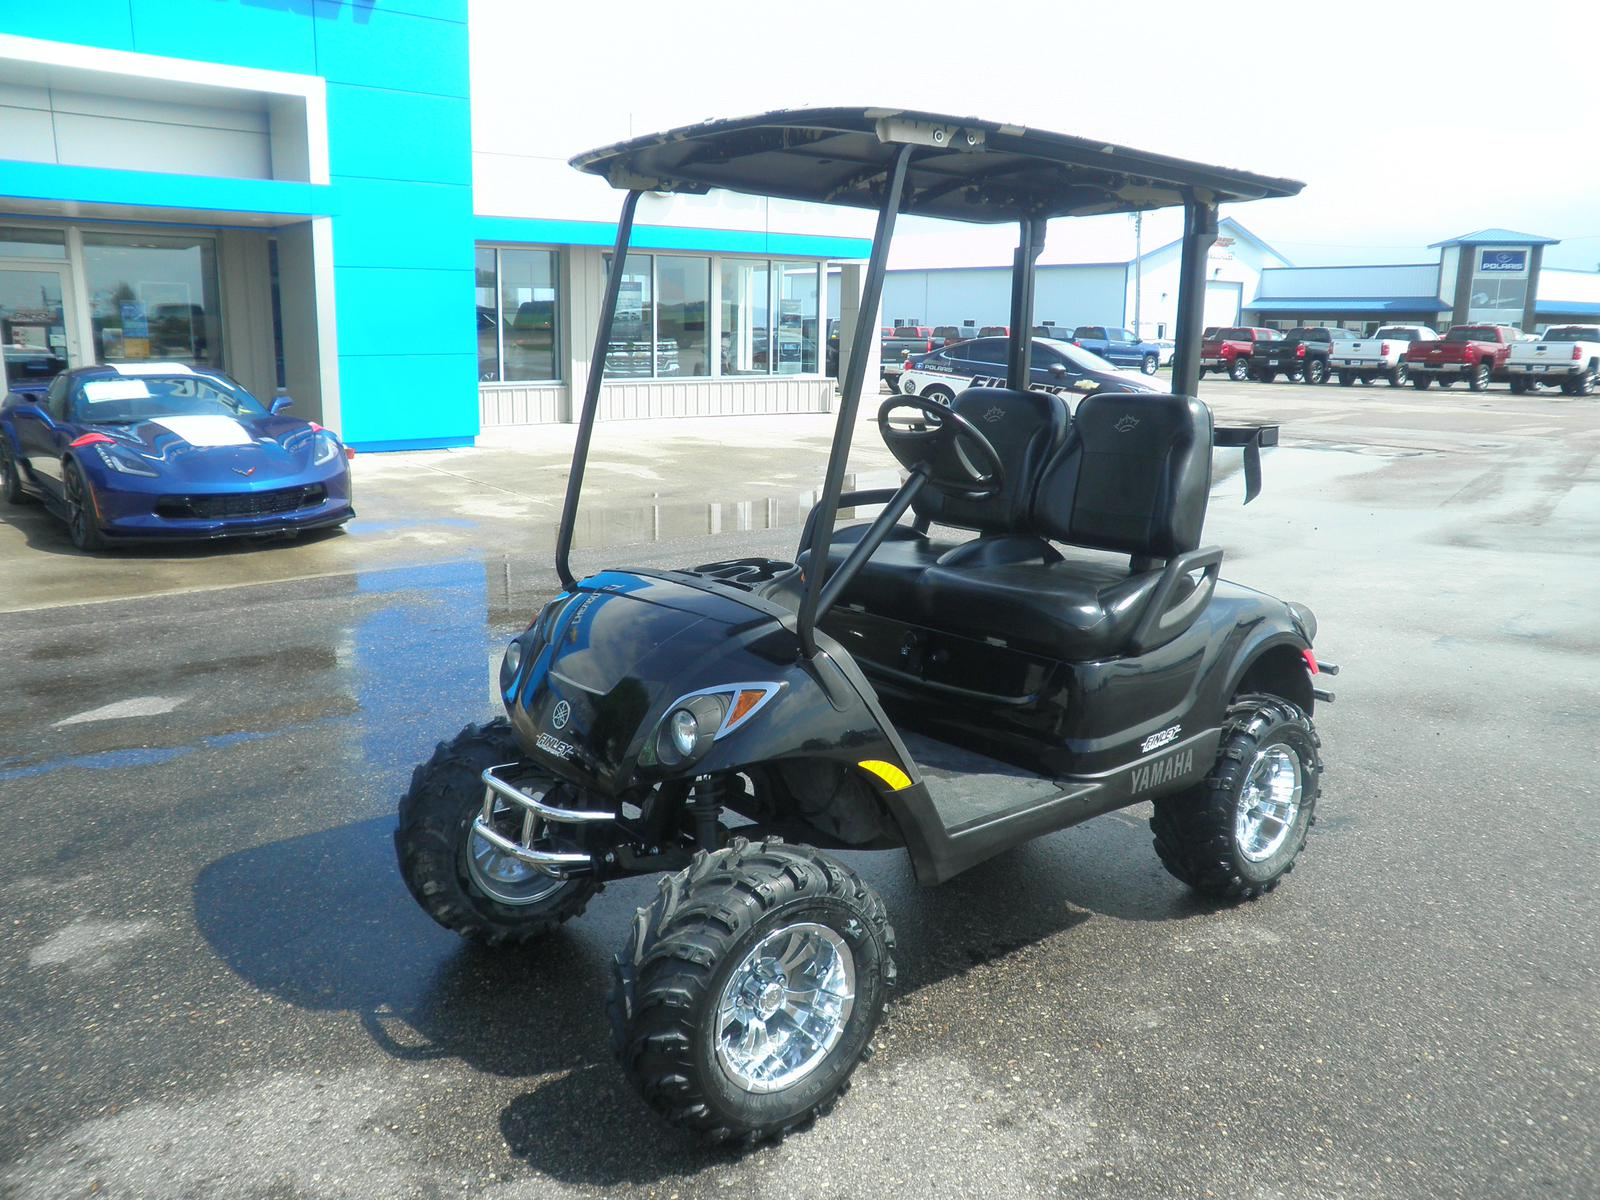 Inventory from Yamaha FINLEY MOTORSPORTS Finley, ND (800